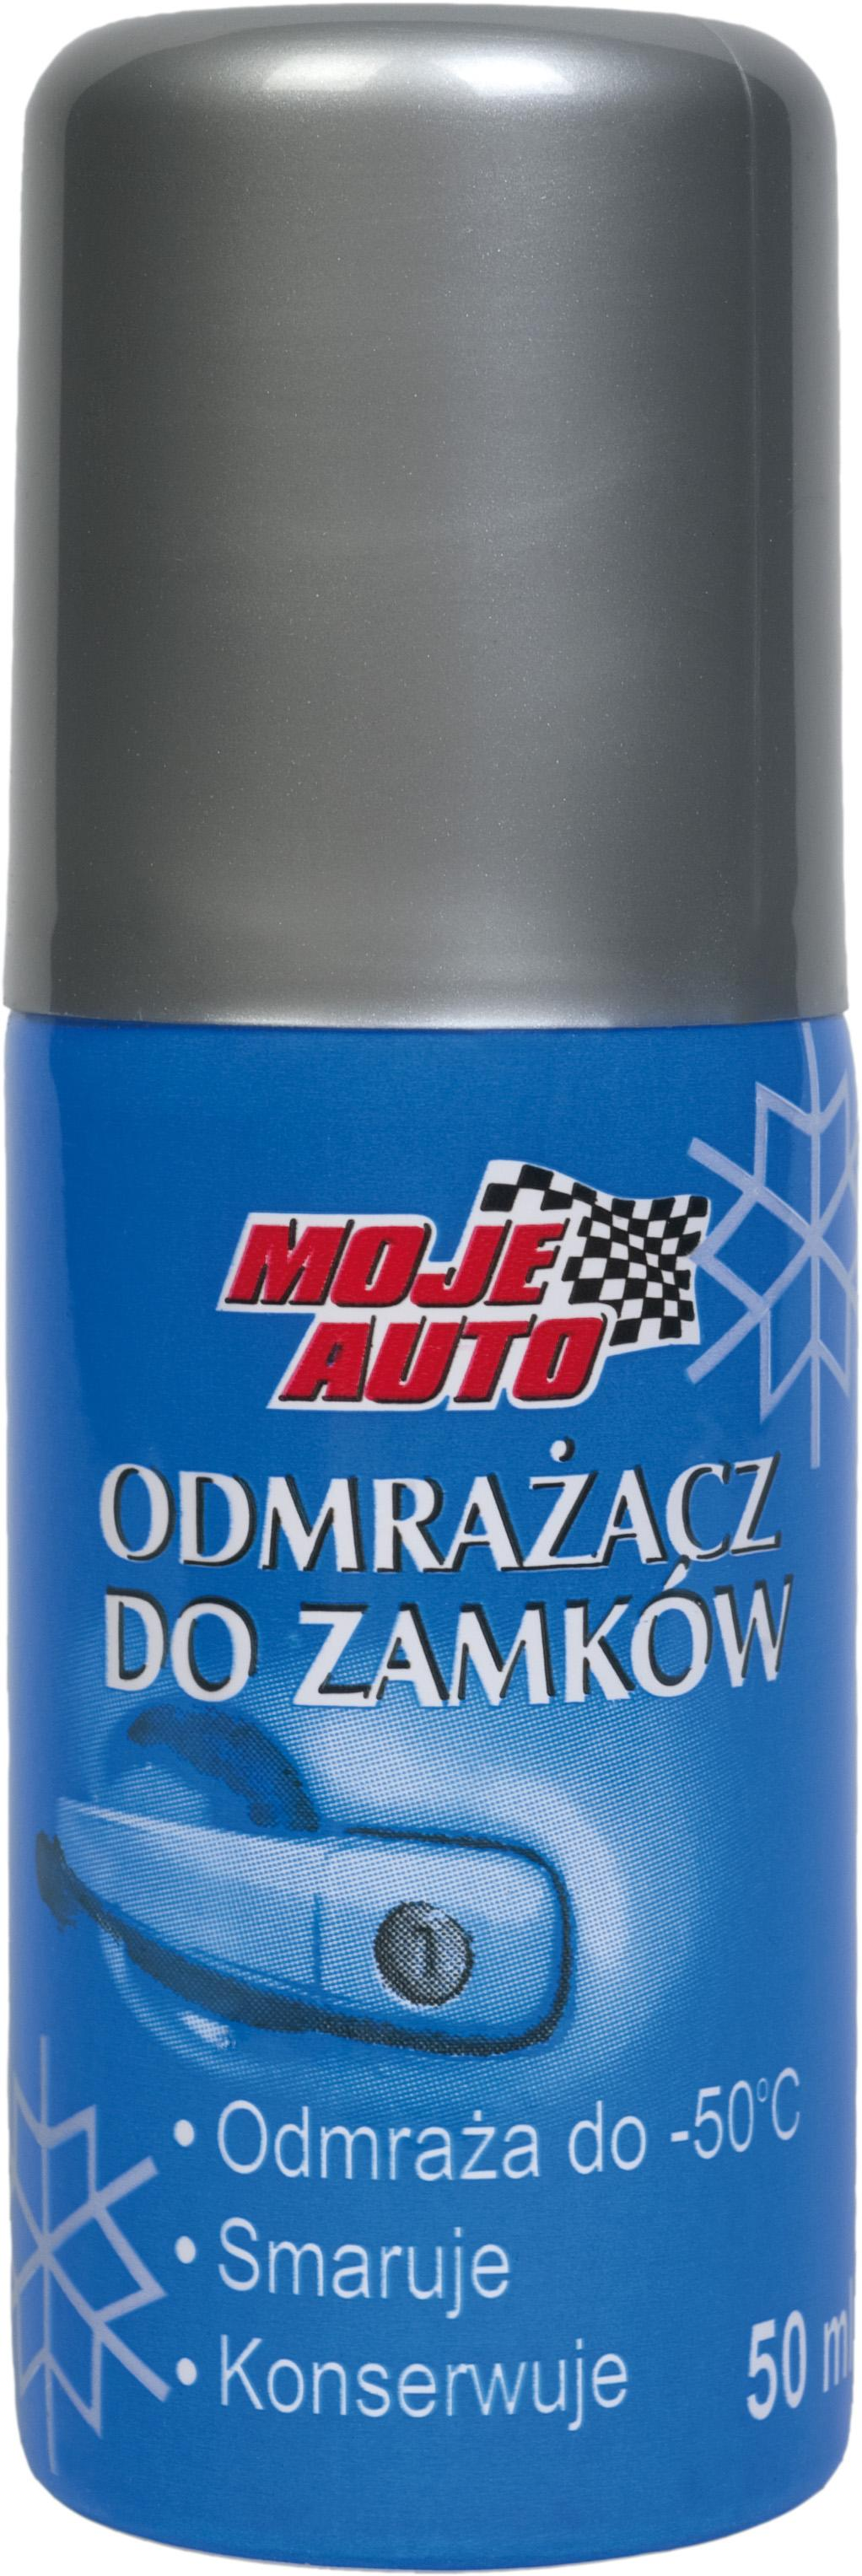 MA 25-013  ODMRAŻACZ DO ZAMKÓW 50ML MOJE AUTO